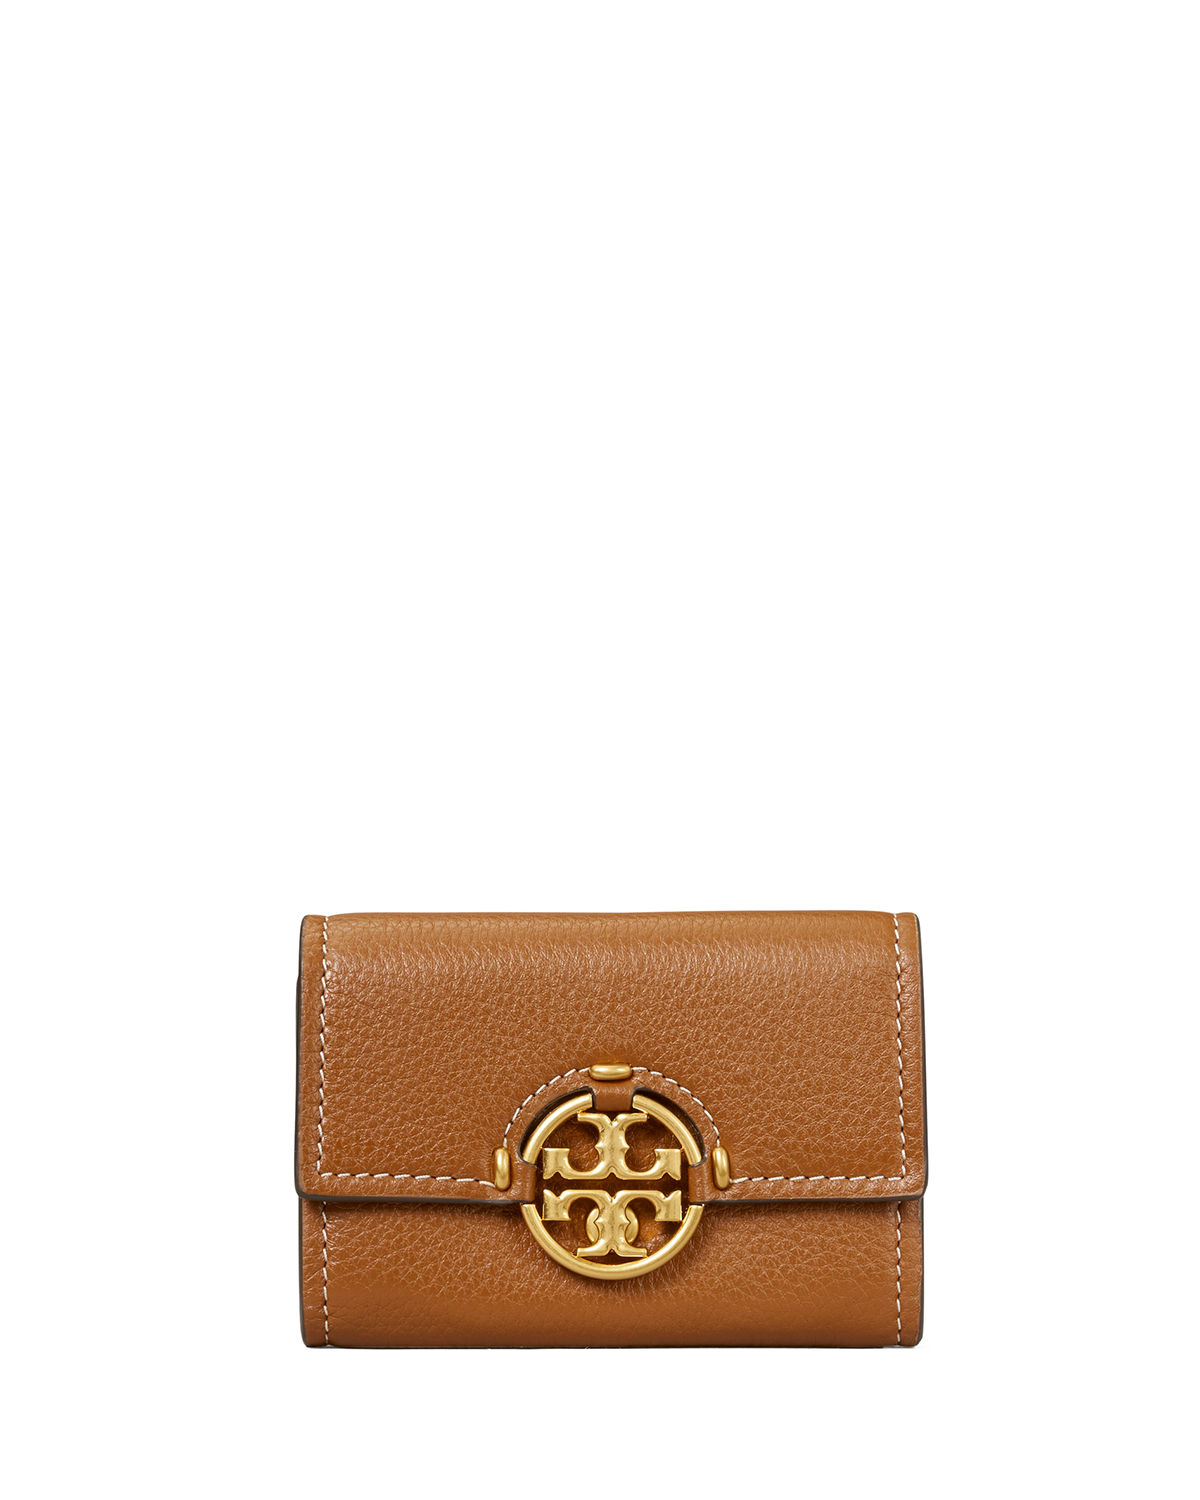 Tory Burch MILLER LEATHER MINI WALLET